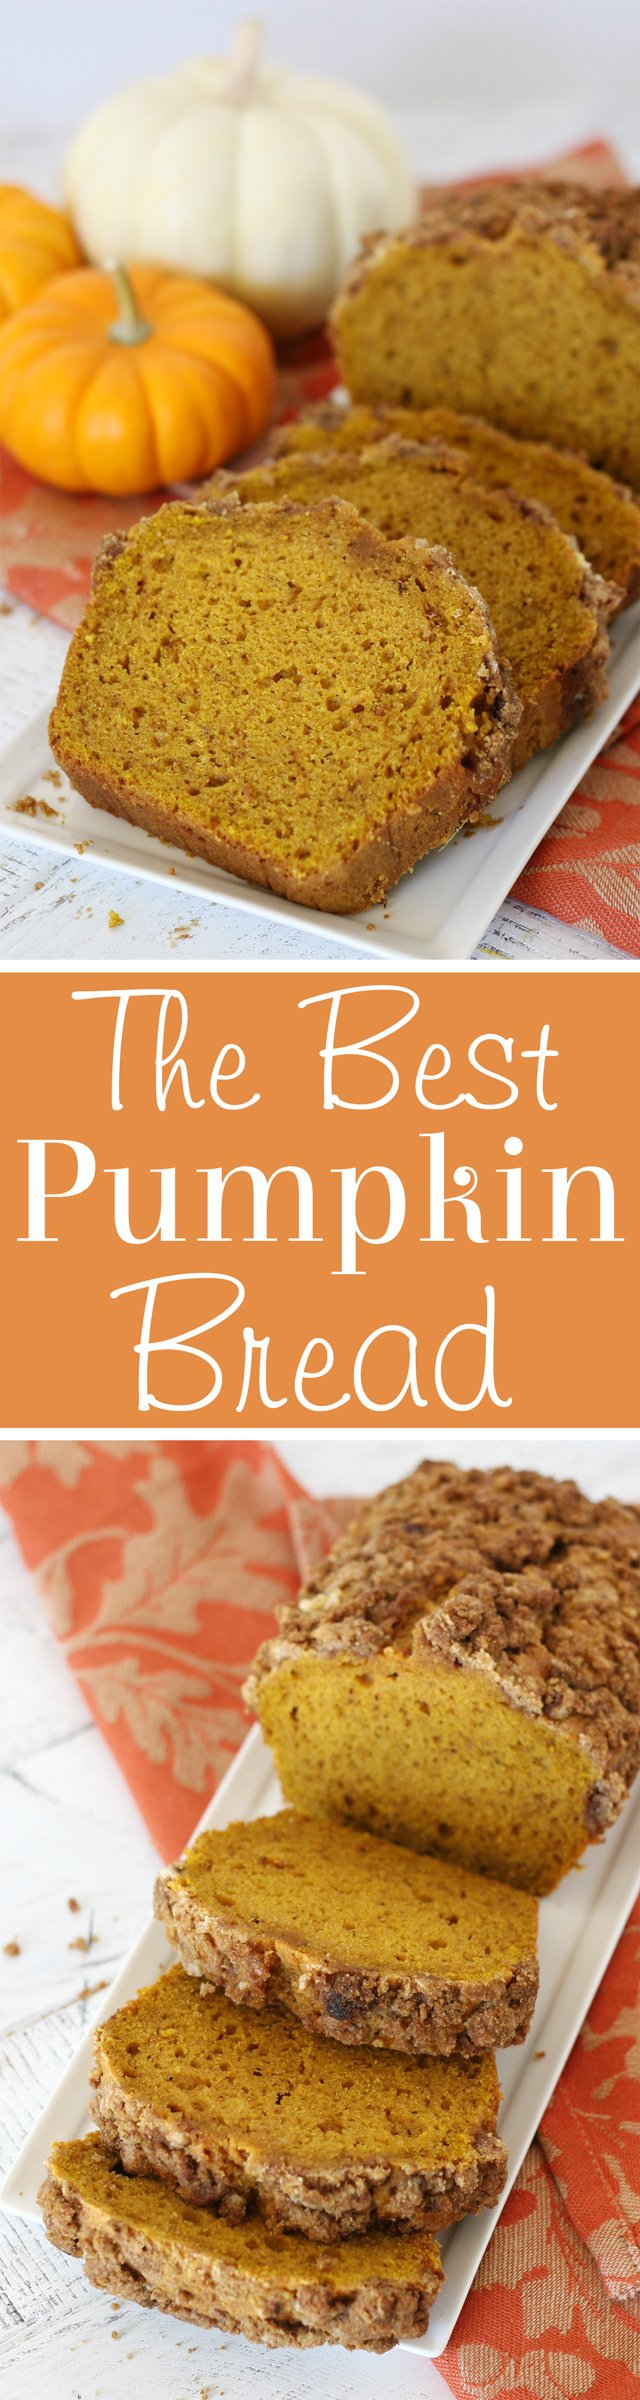 Simply the BEST Pumpkin Bread Recipe!